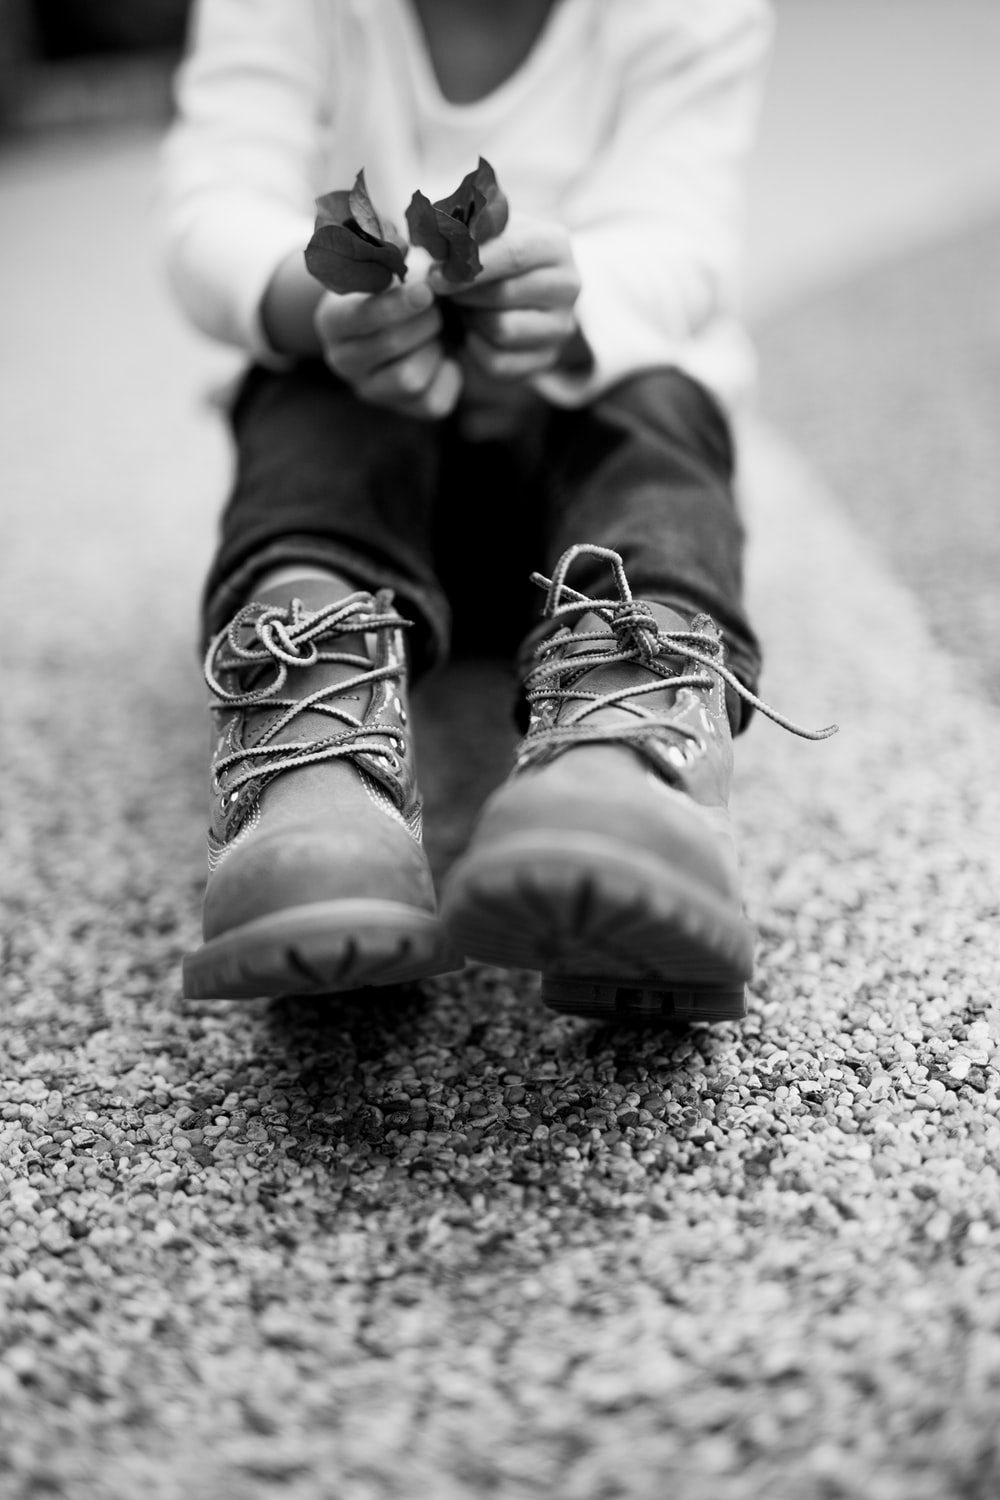 grayscale photo of person wearing hiking shoes